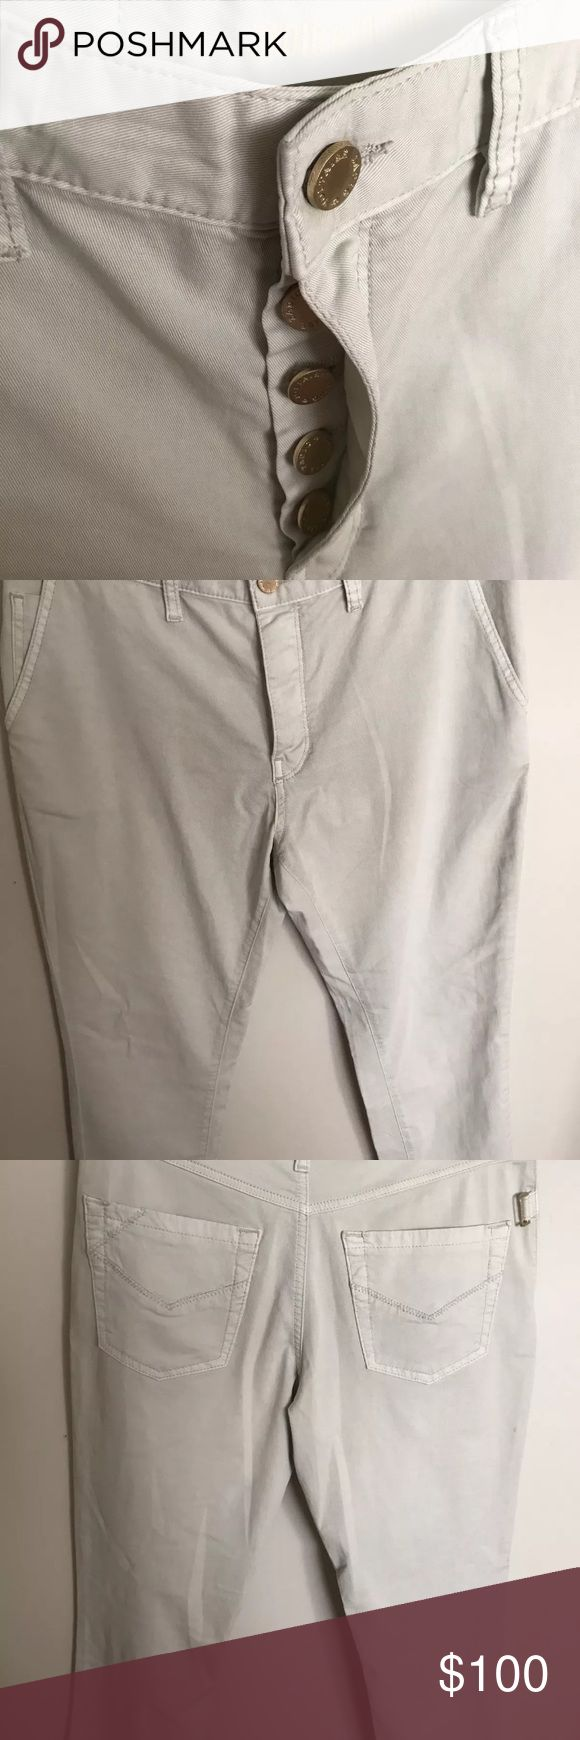 "Zadig & Voltaire Off-White Denim Button Fly Pants Five button down fly. Double side pockets and two rear pockets. Gold Embellishments (See photos)  SBCE0103F 36                                                                                           Size Small 36 (see photo of size chart)                                                                                         Eliot Ice (Off-White)  Retail Price $230.00  98% Cotton & 2% Elastane  Approximate measurements: 10"" rise, 26""…"